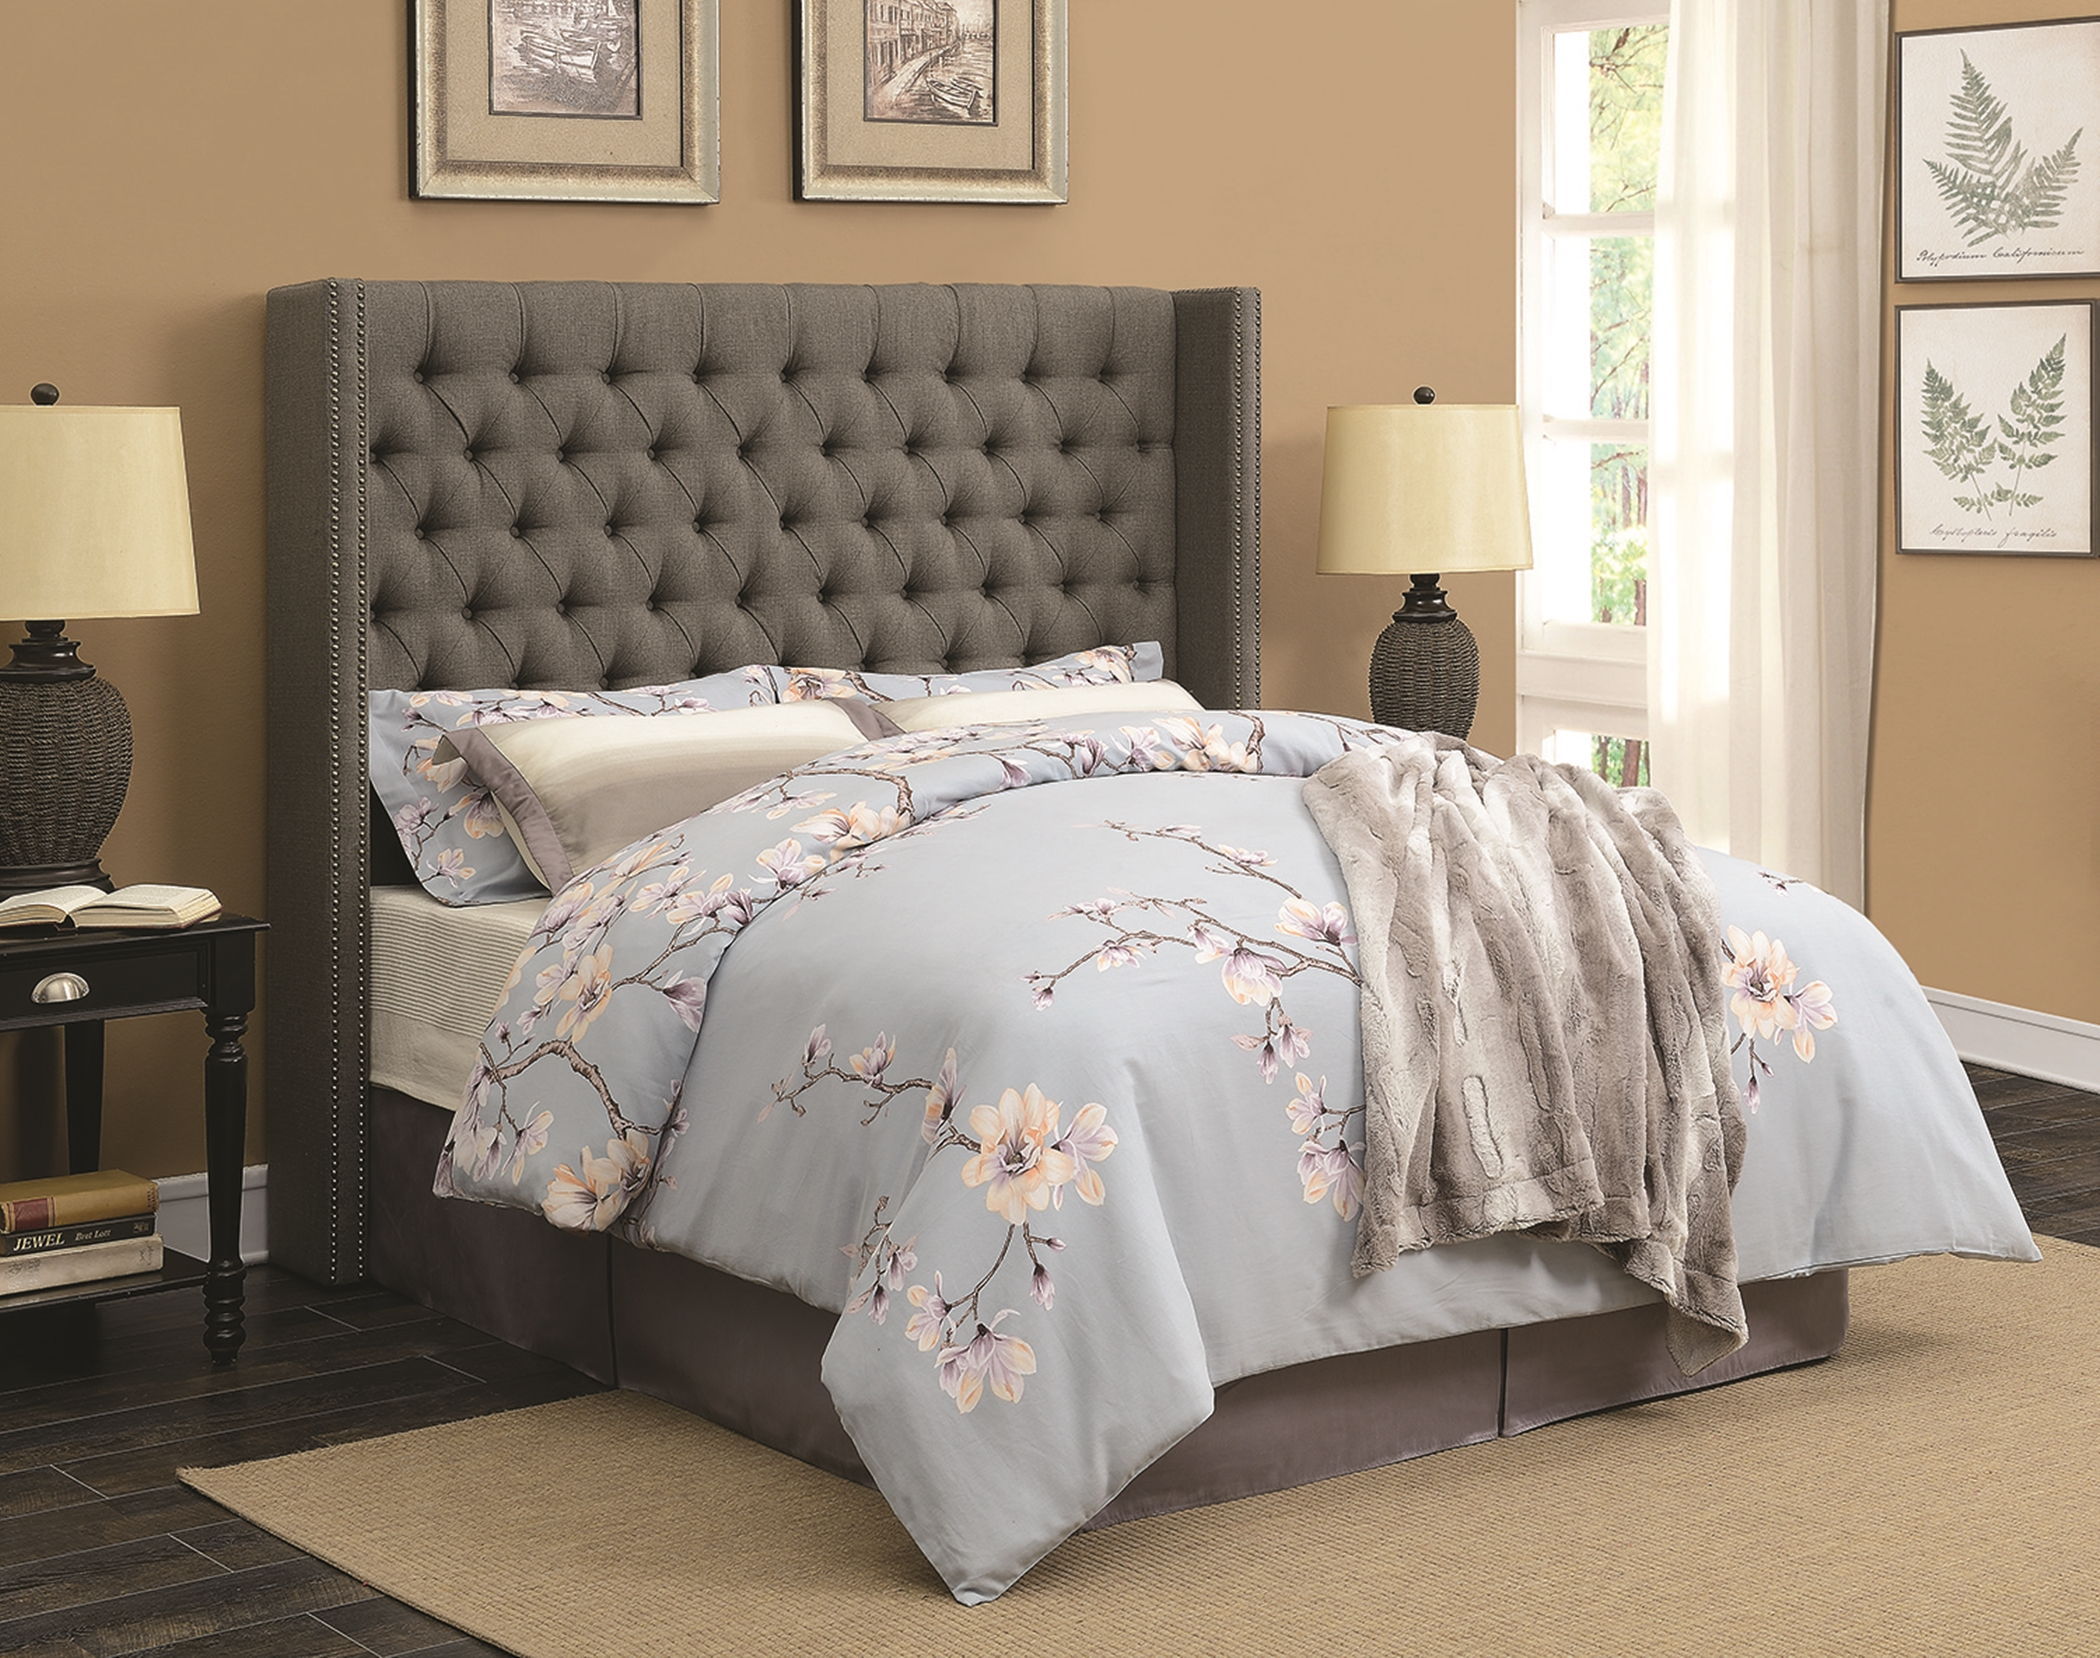 Benicia Grey Upholstered Queen Headboard